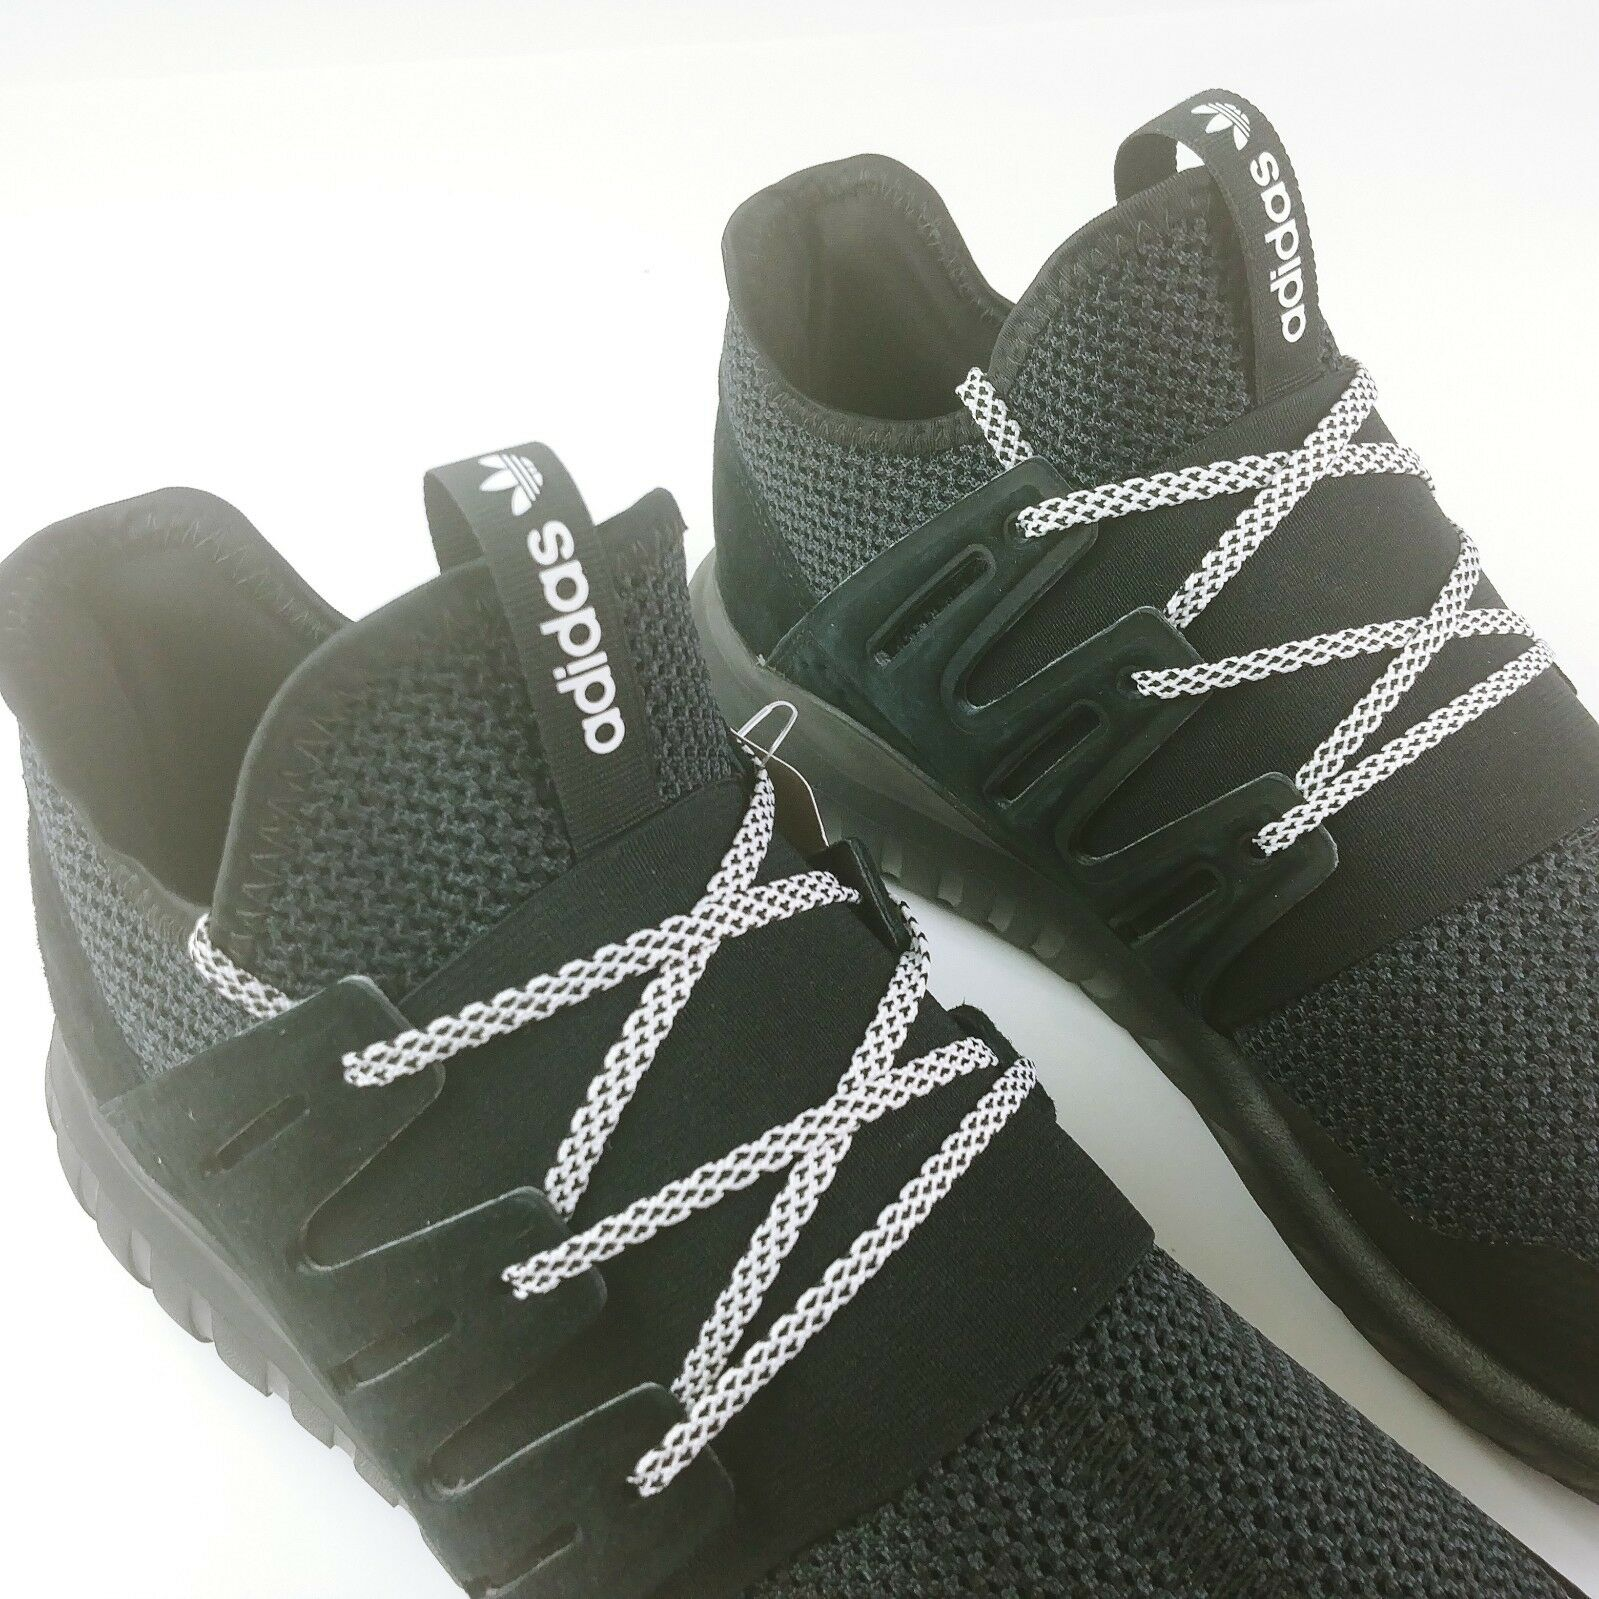 eaadbc086 ... Adidas Tubular Radial Men s Running shoes Core Core Core Blk Vintage  Whte S76719 Sz 11.5 13fb0f ...